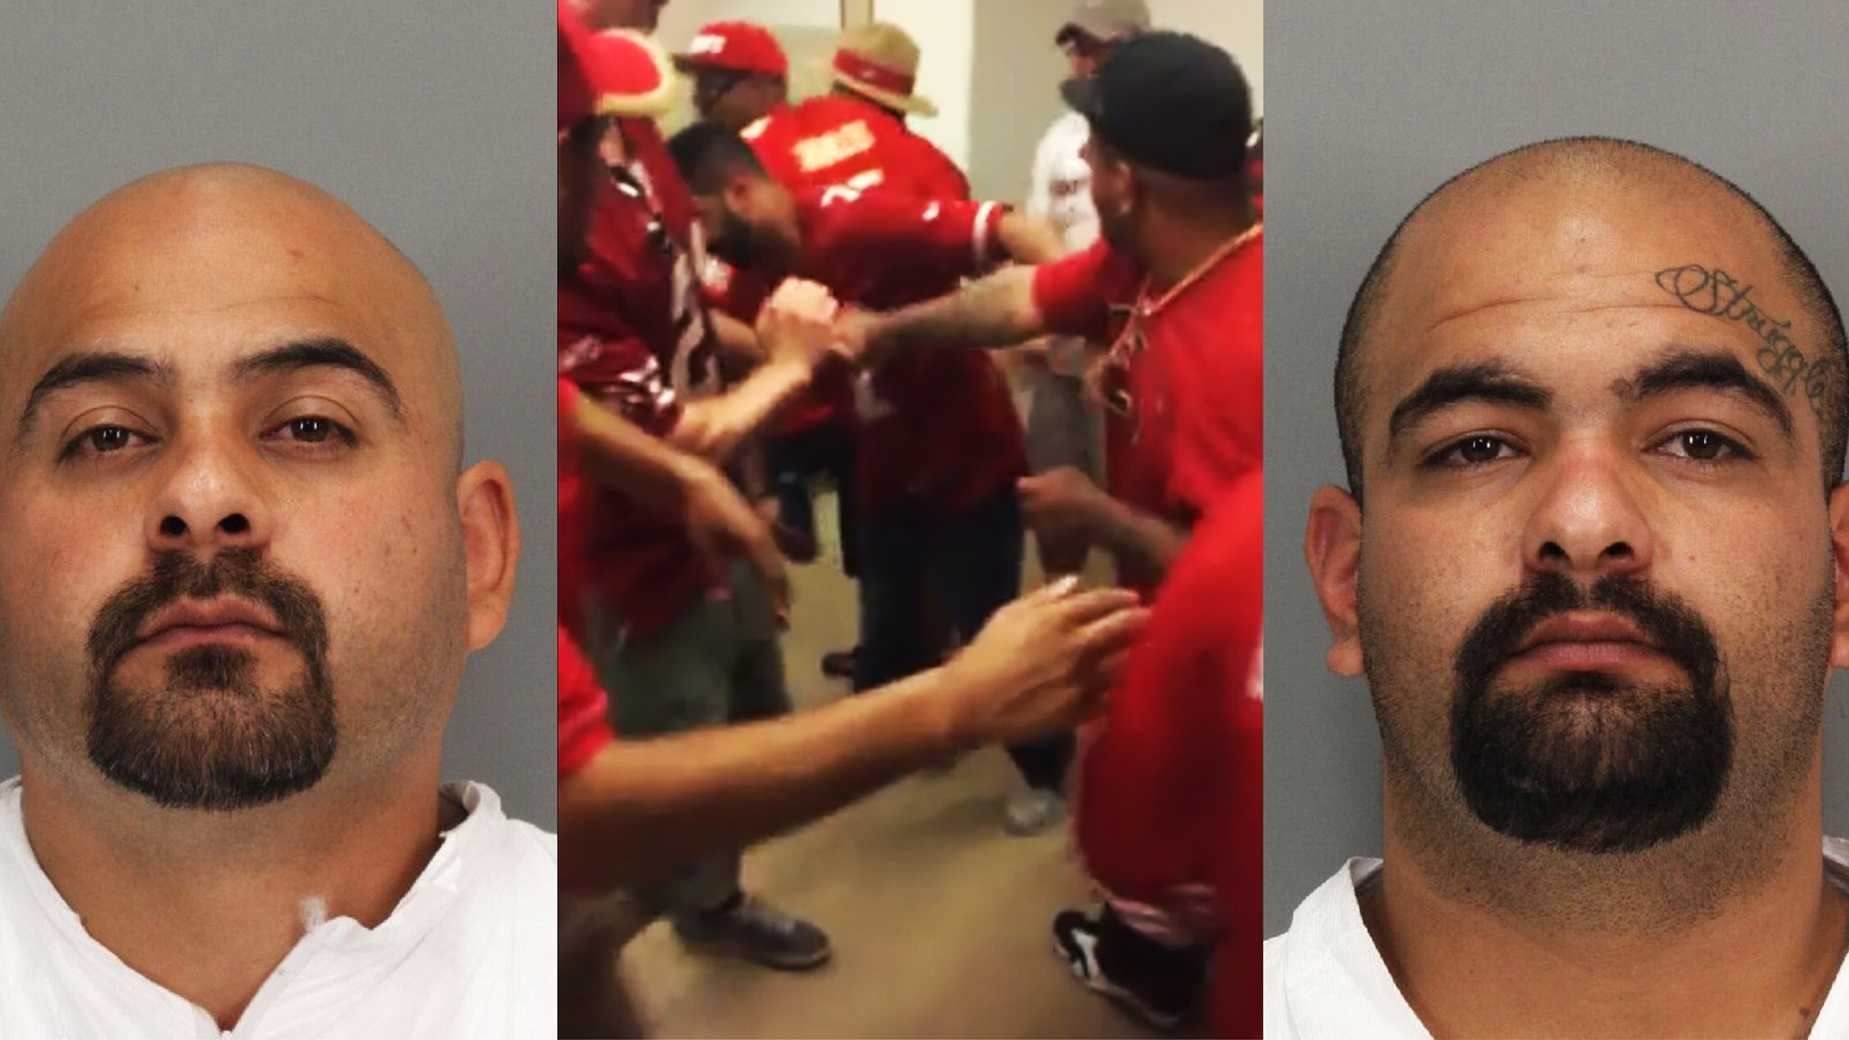 Amador Rebollero and Dario Rebollero were arrested at the 49ers vs. Chiefs game Sunday.